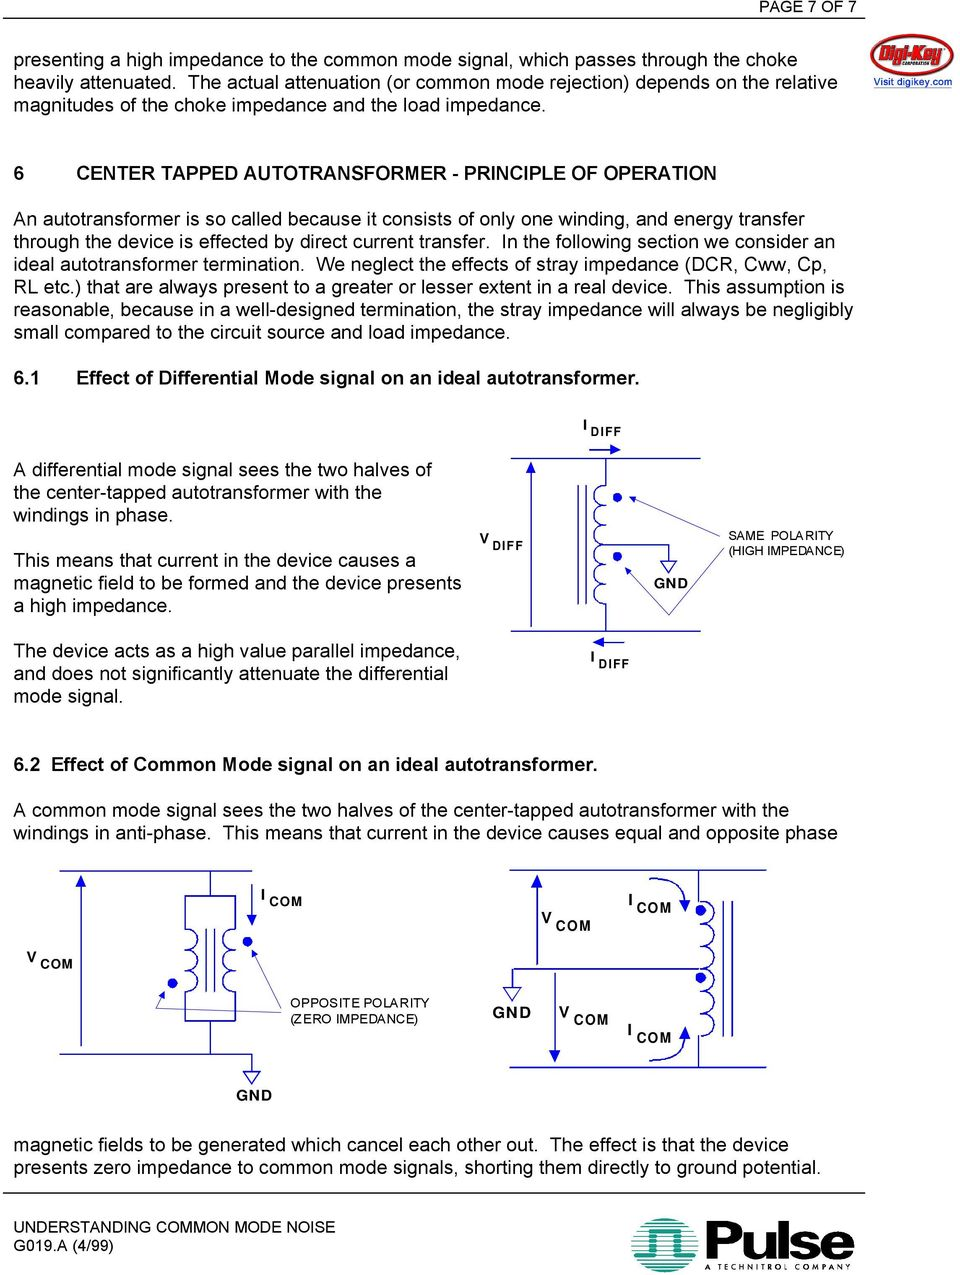 6 CENTER TAPPED AUTOTRANSFORMER - PRINCIPLE OF OPERATION An autotransformer is so called because it consists of only one winding, and energy transfer through the device is effected by direct current